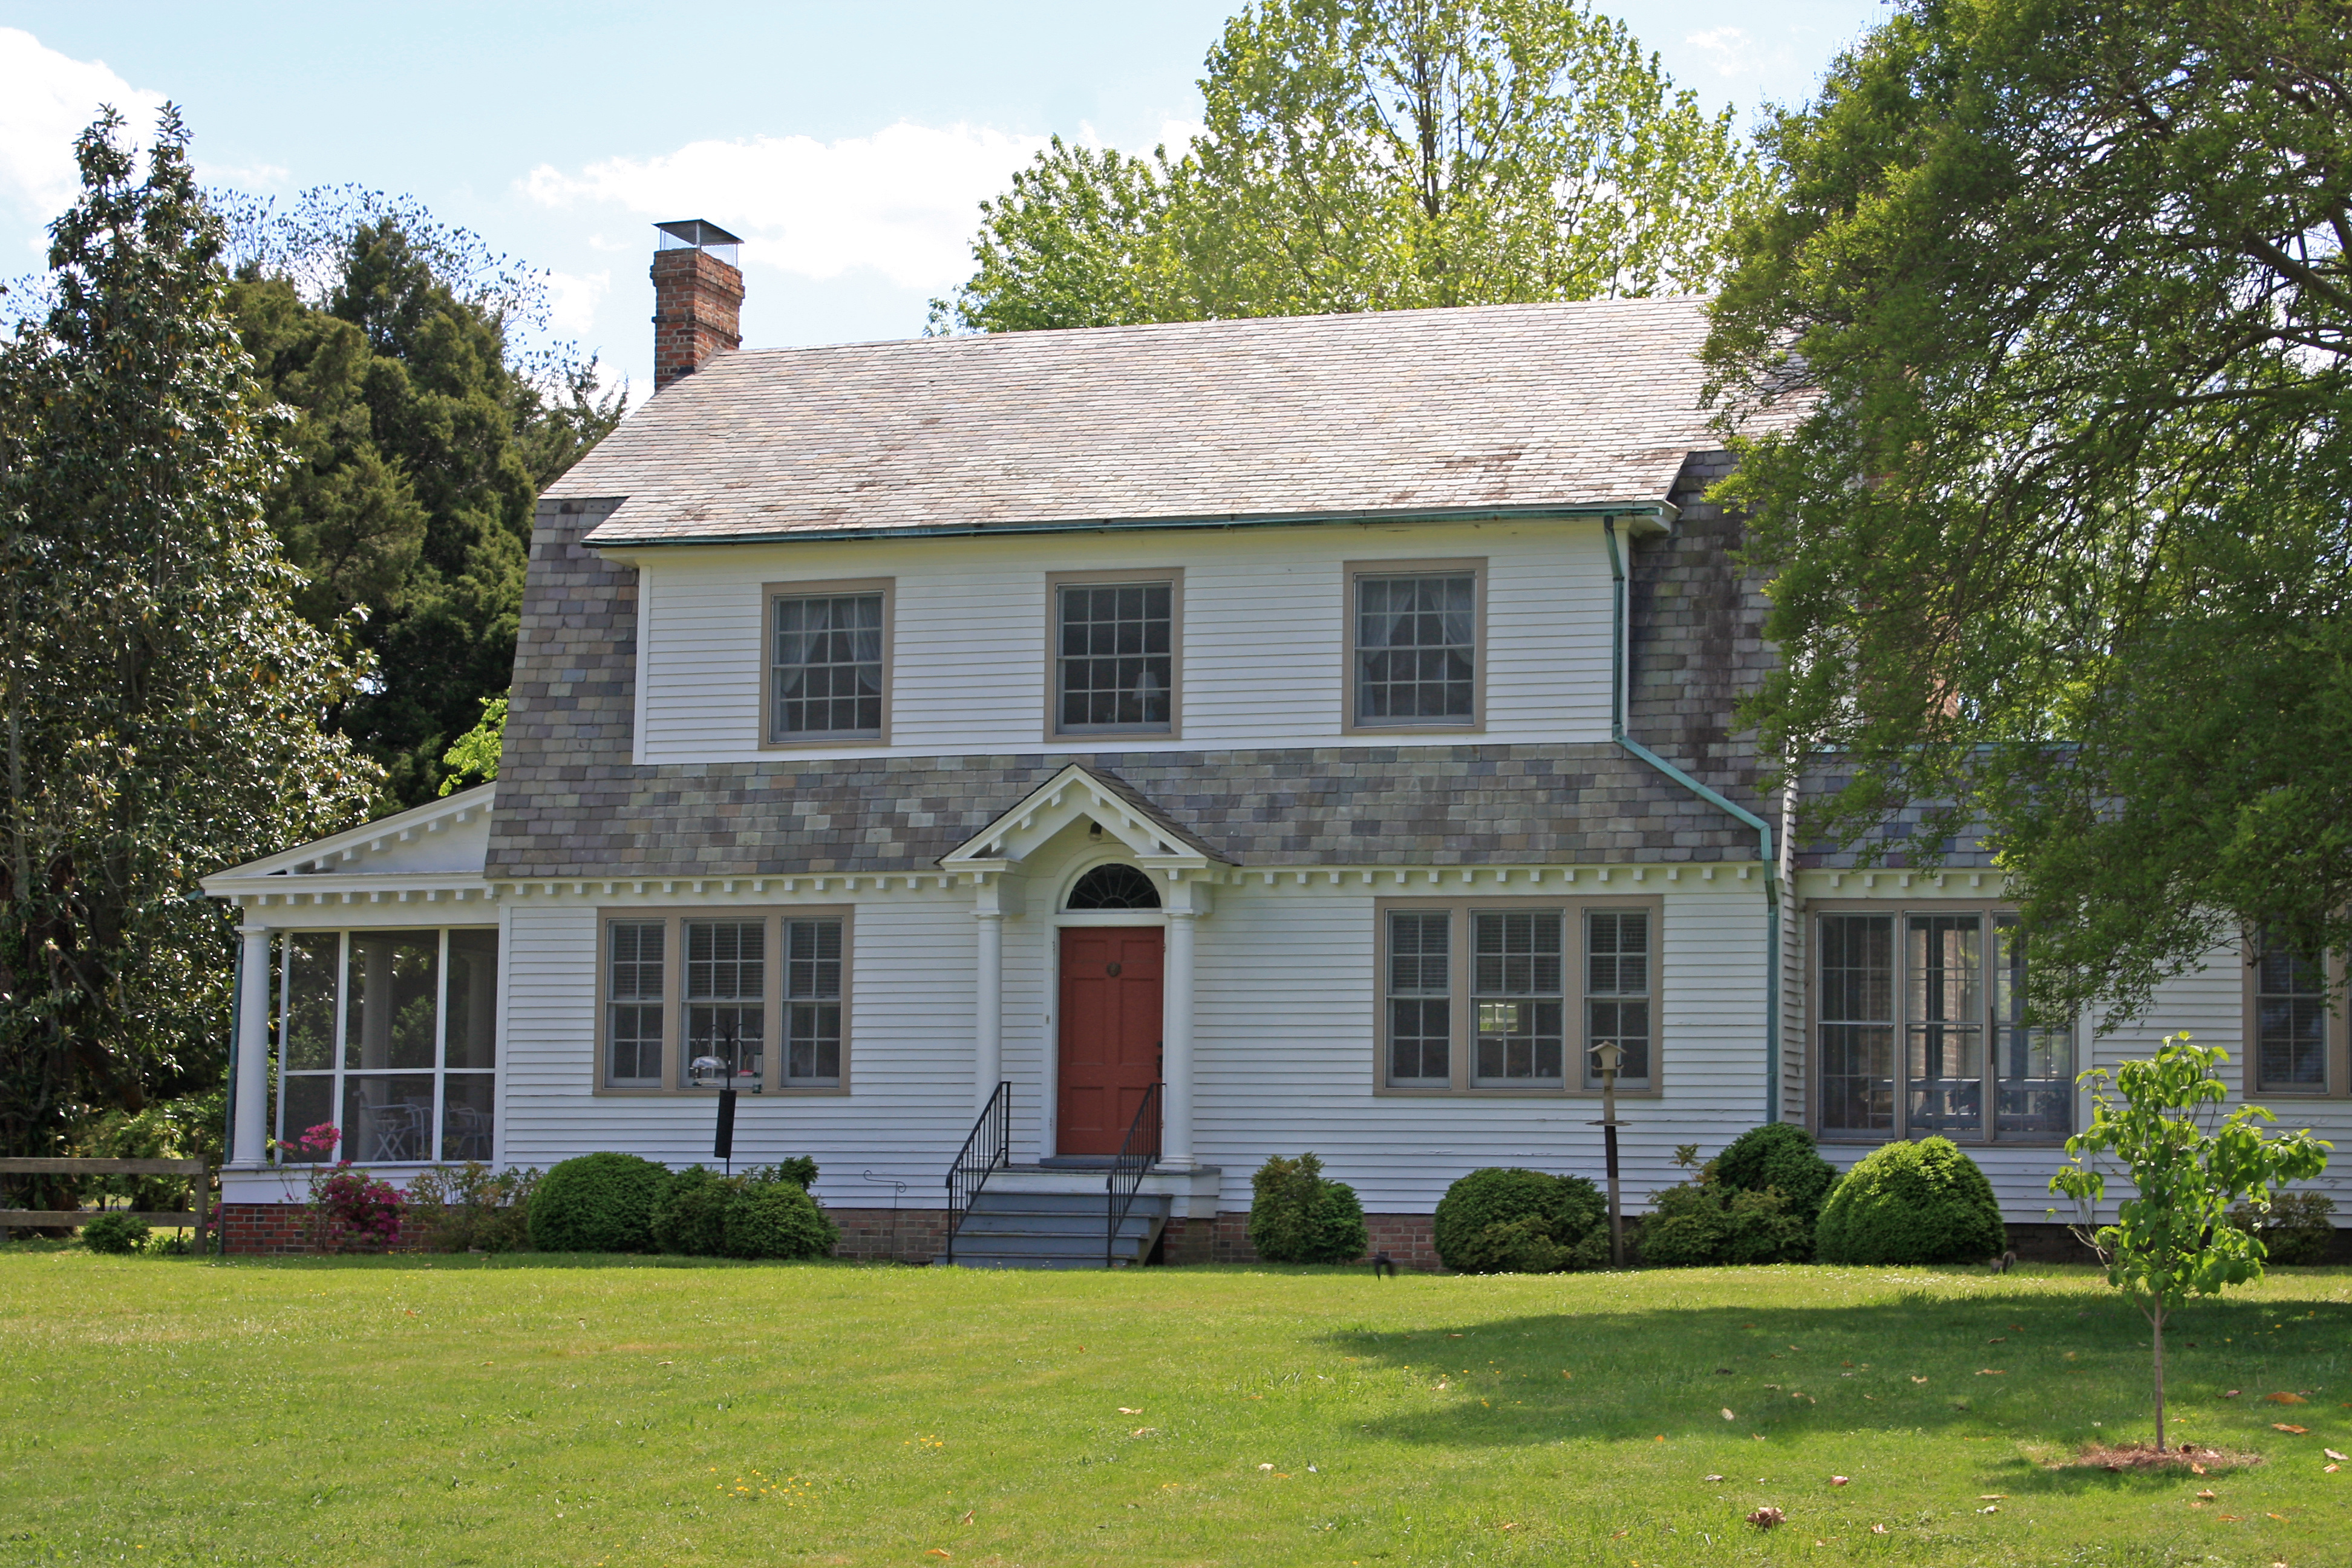 A white colonial style house with red front door, grey shingles, and large green front yard.